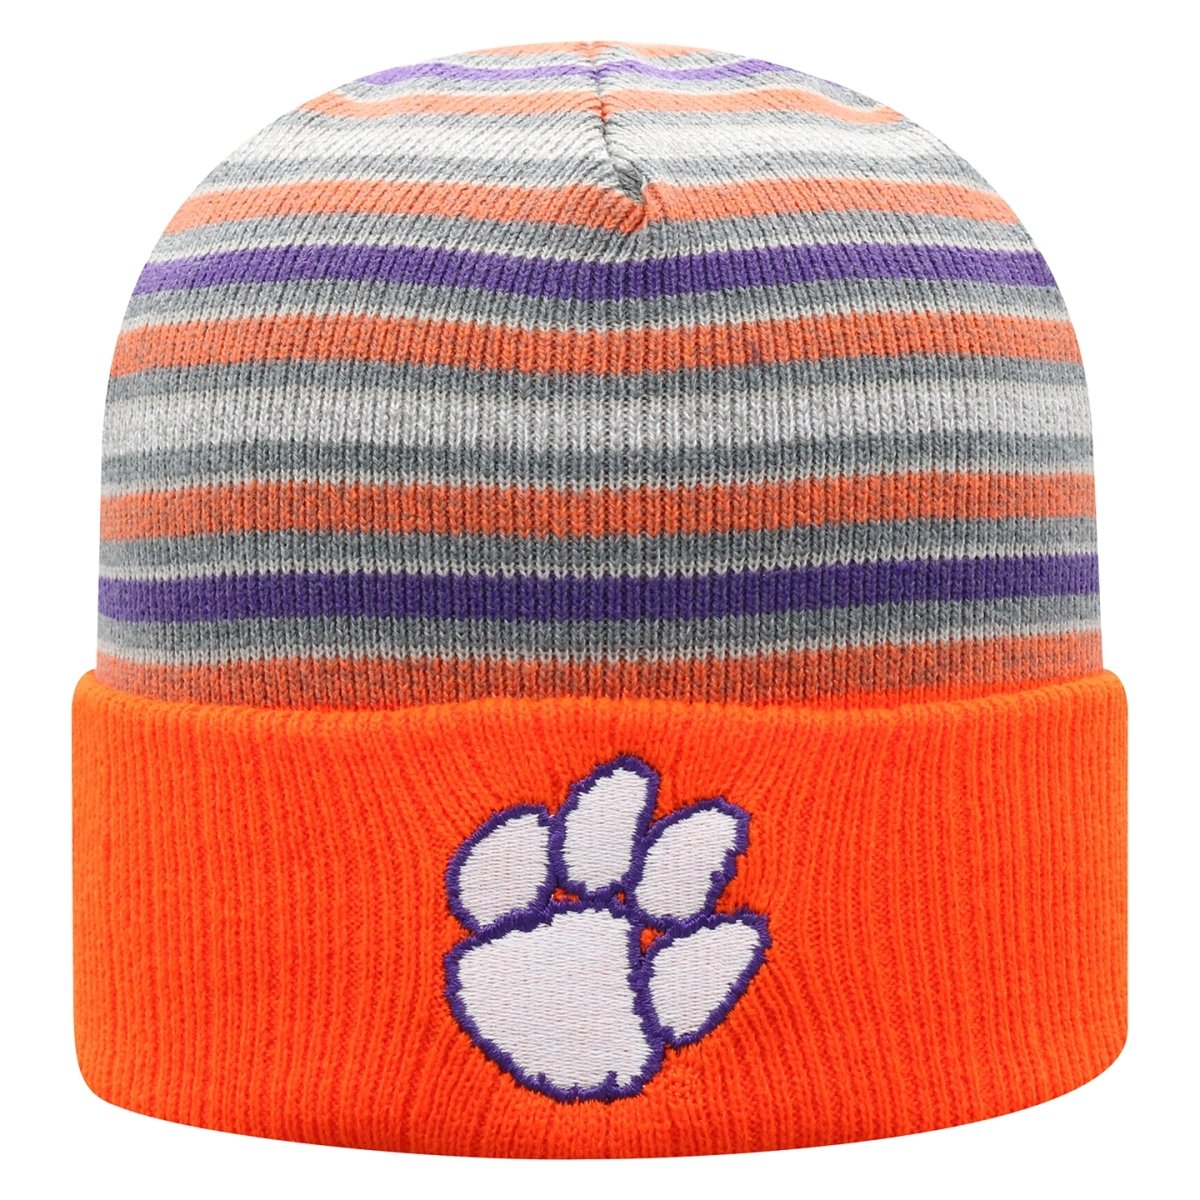 Top of the World Clemson Tigers Mcgoat Cuffed Multi-color Knit Beanie - Mr. Knickerbocker